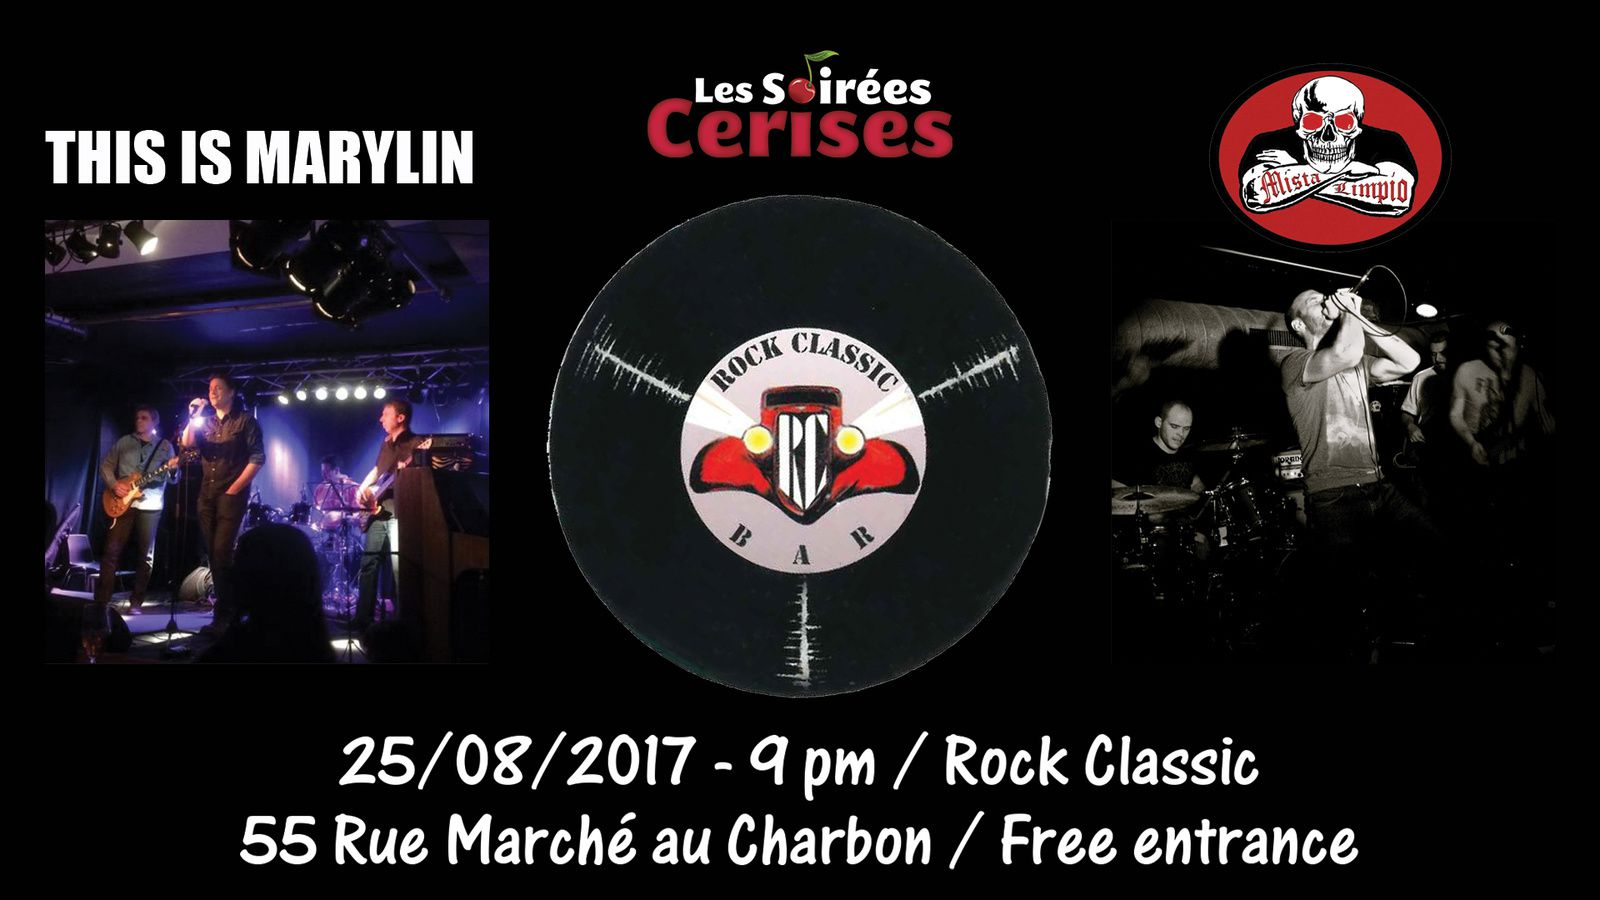 ▶ This is Marylyn + Mista Limpio @ Rock Classic - 25/08/2017 - 21h00 - Entrée gratuite !